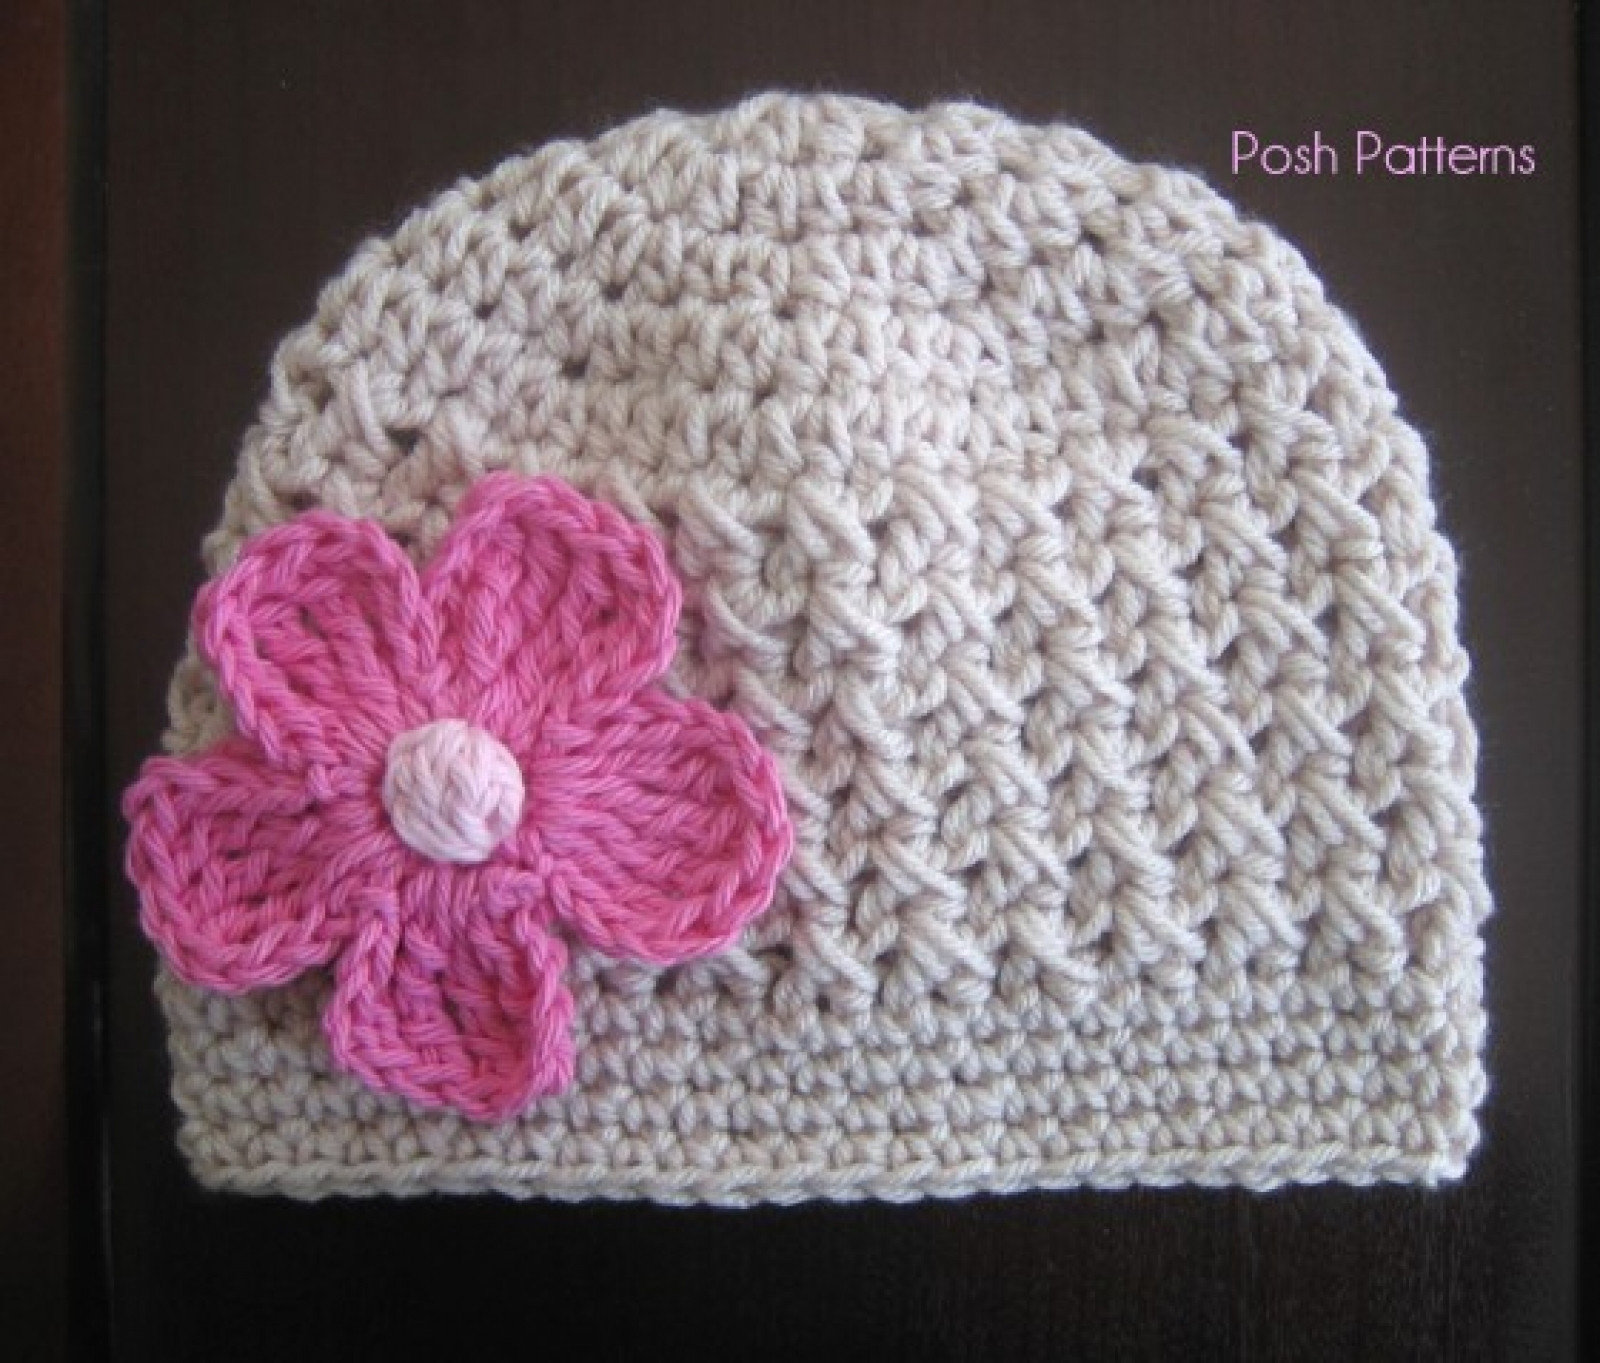 Beautiful Crochet Hat Pattern Crochet Sites Of Incredible 47 Images Crochet Sites